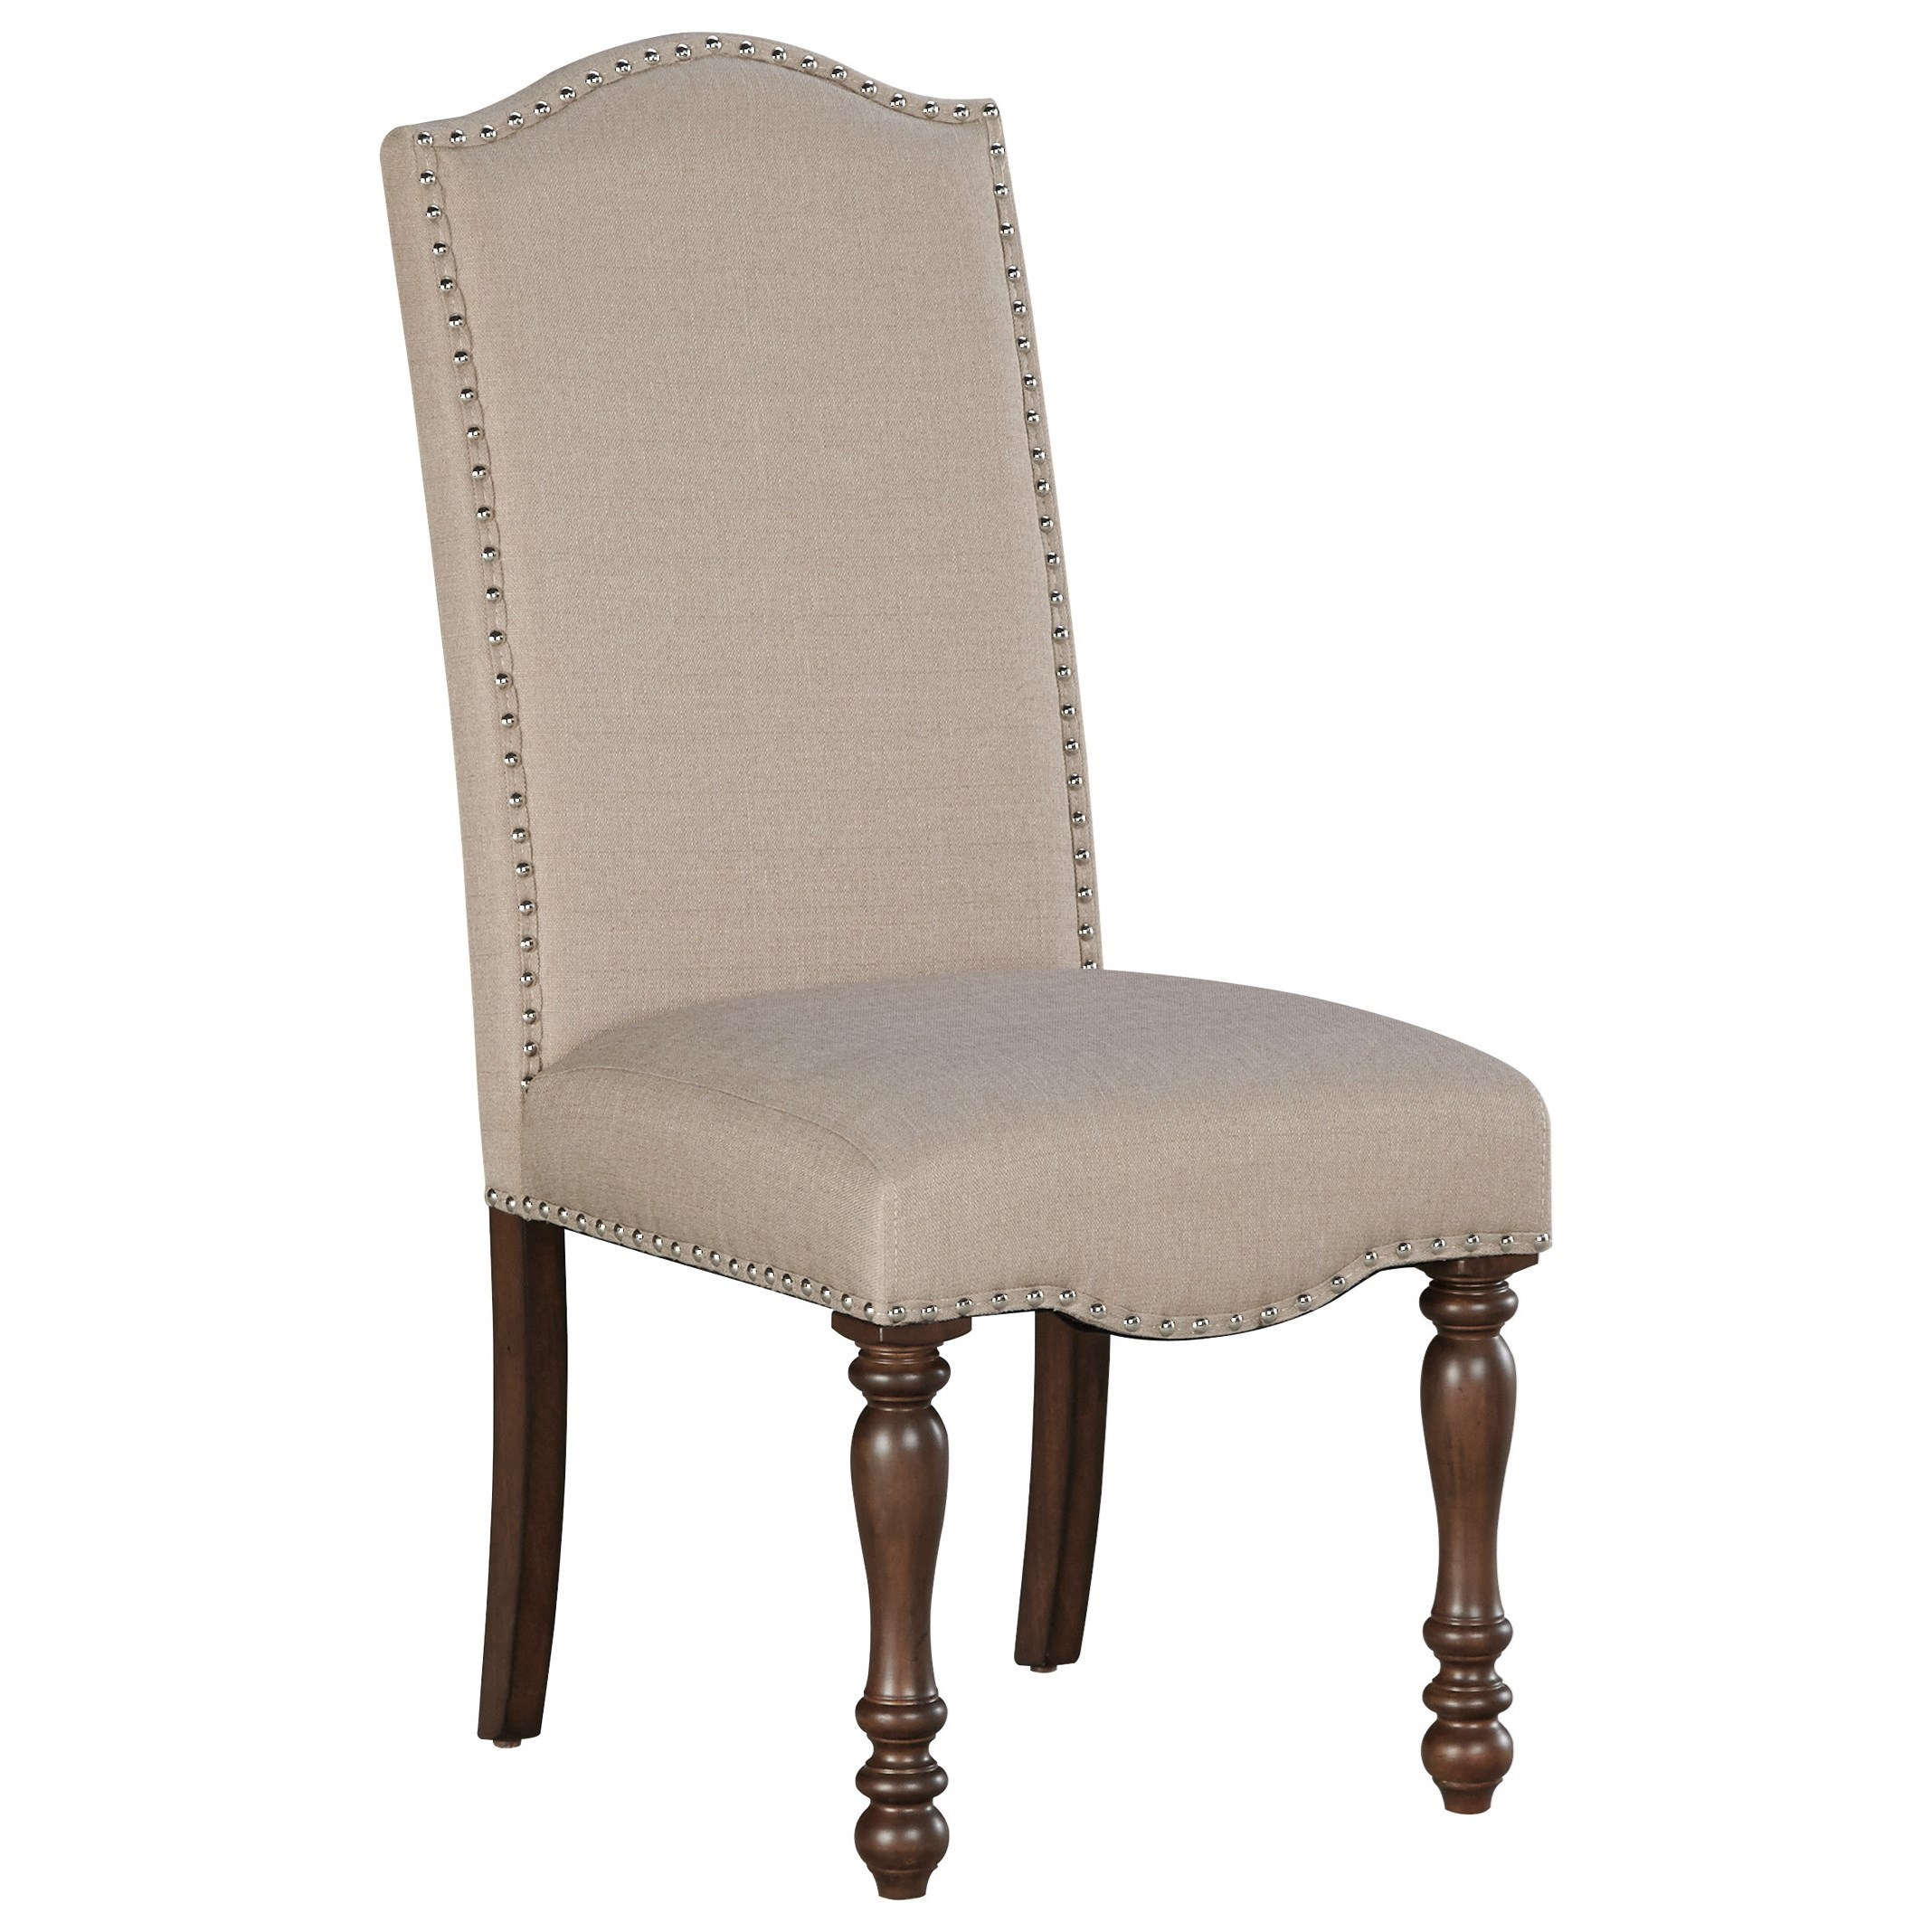 Signature design by ashley baxenburg traditional dining for Dining chairs with upholstered seats